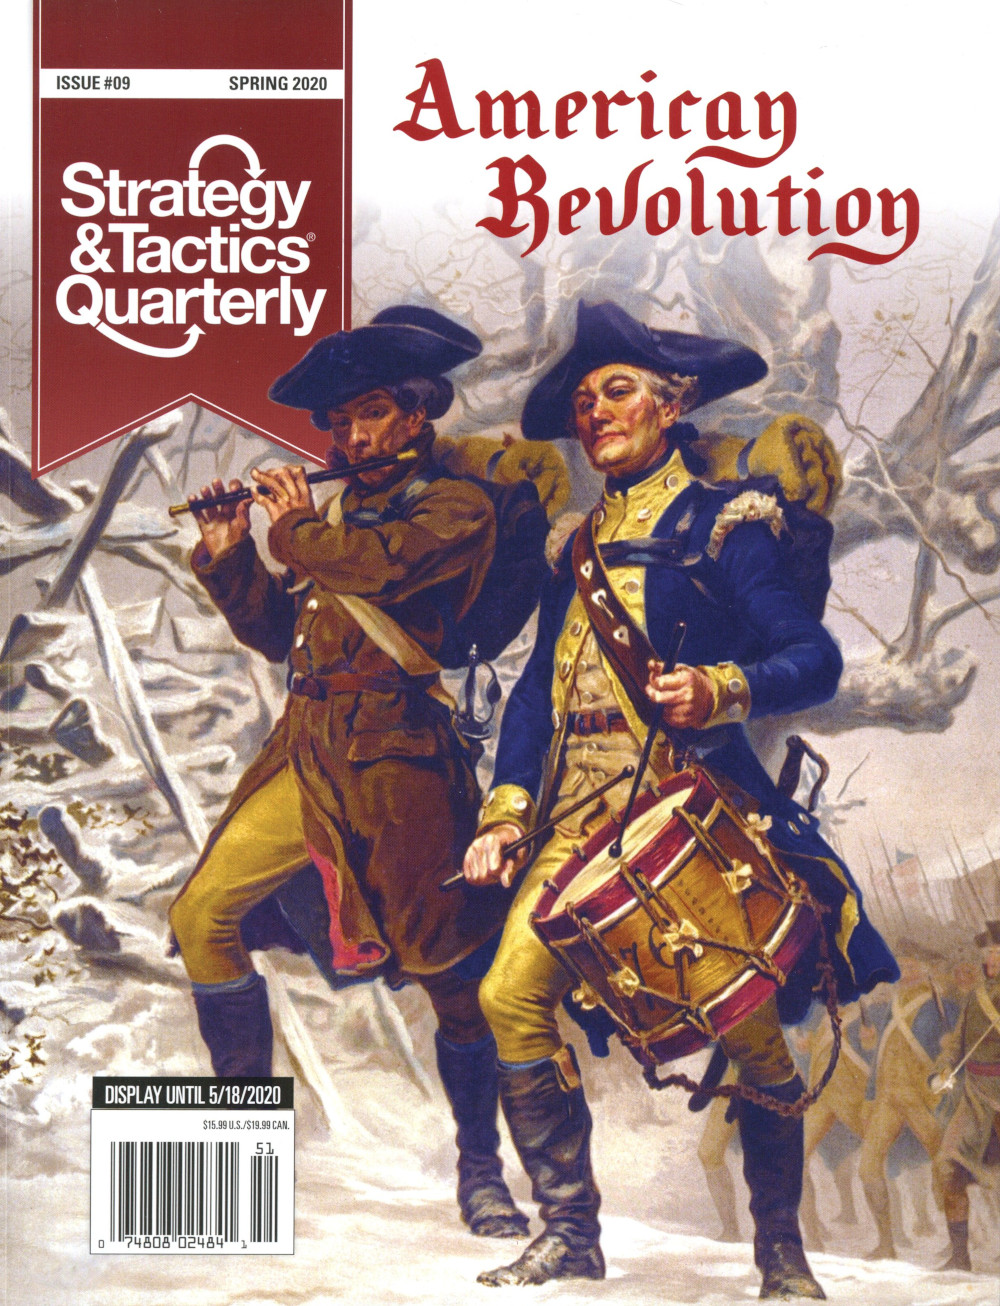 Strategy & Tactics - Quarterly - 9 - American Revolution